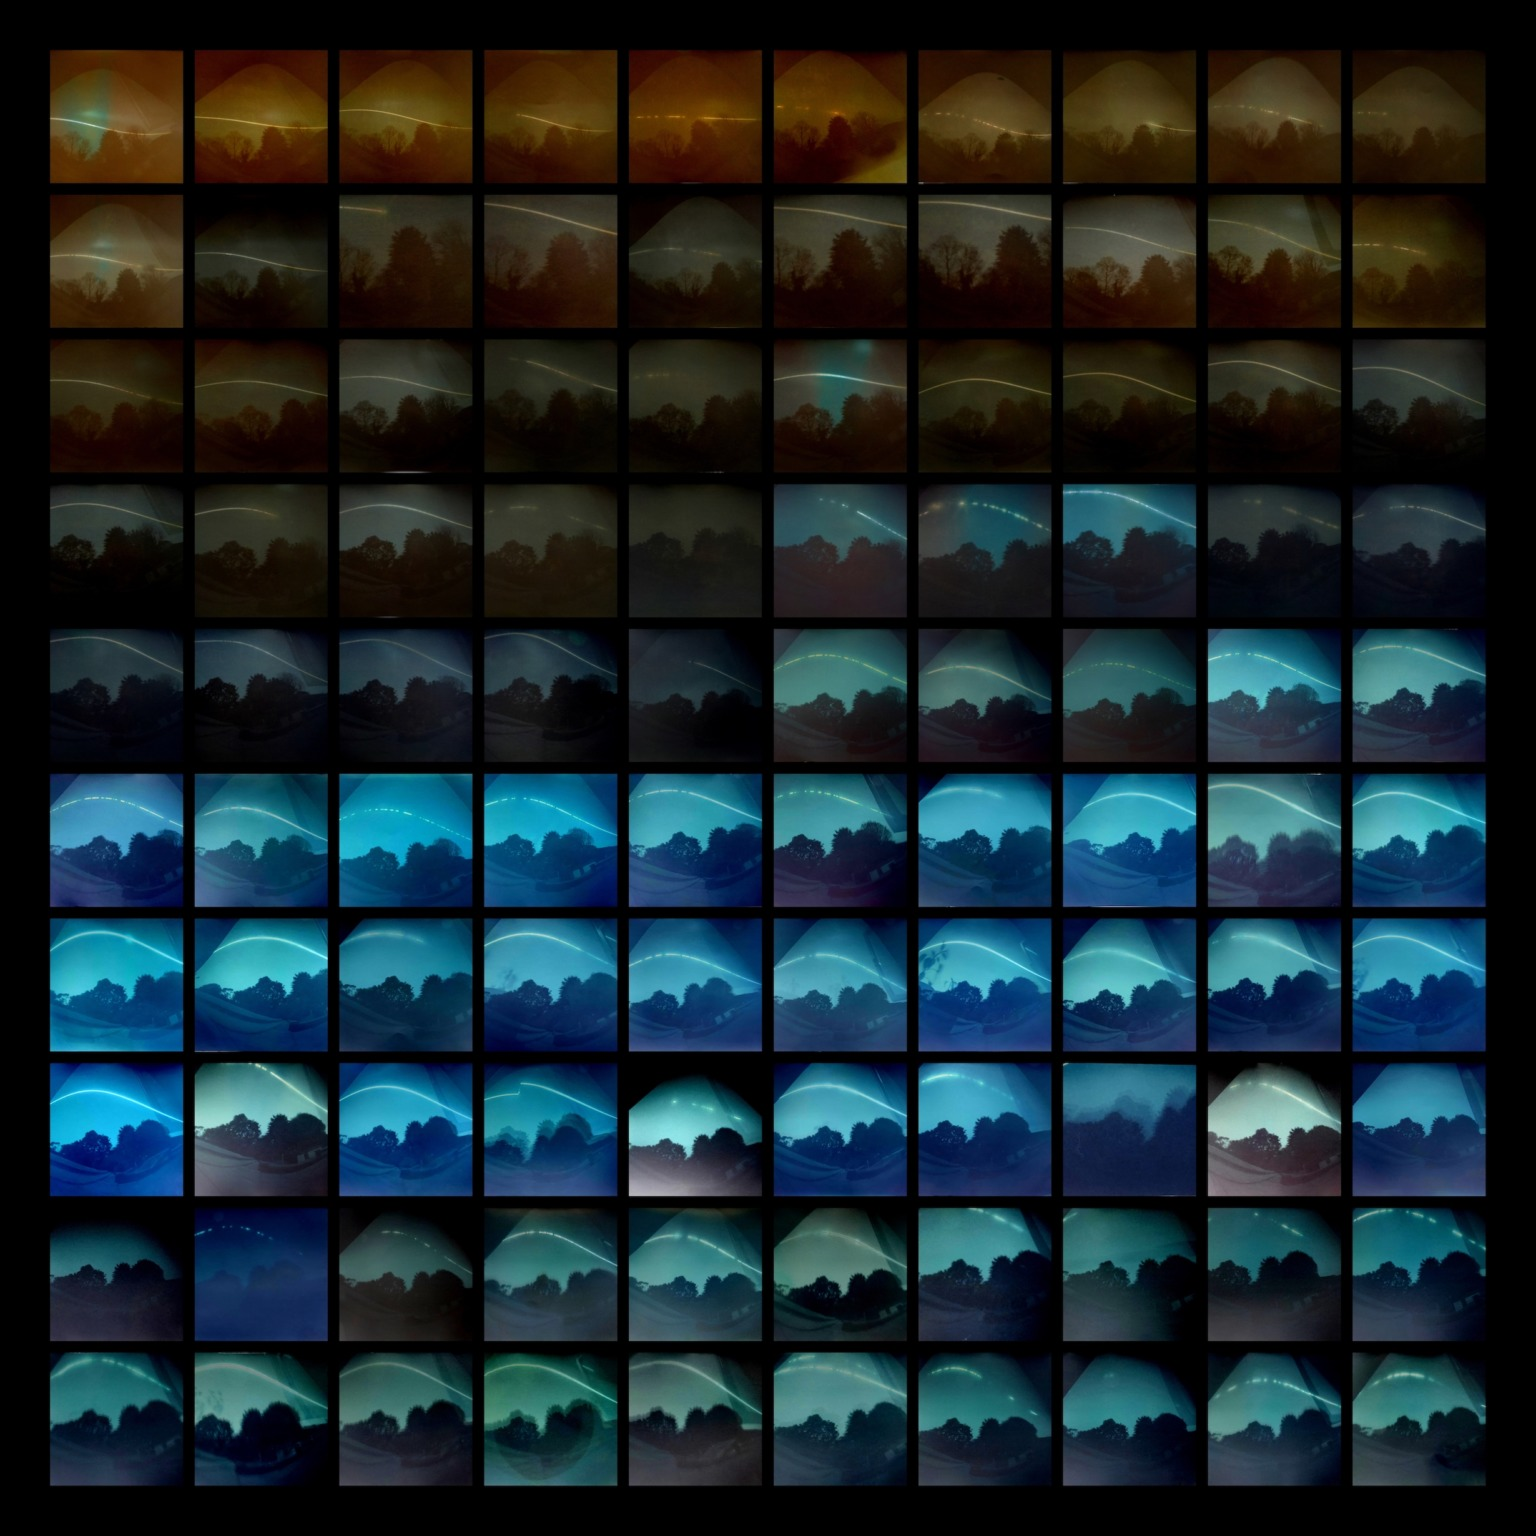 Multiple rows of square photographs of the sky of a period of time